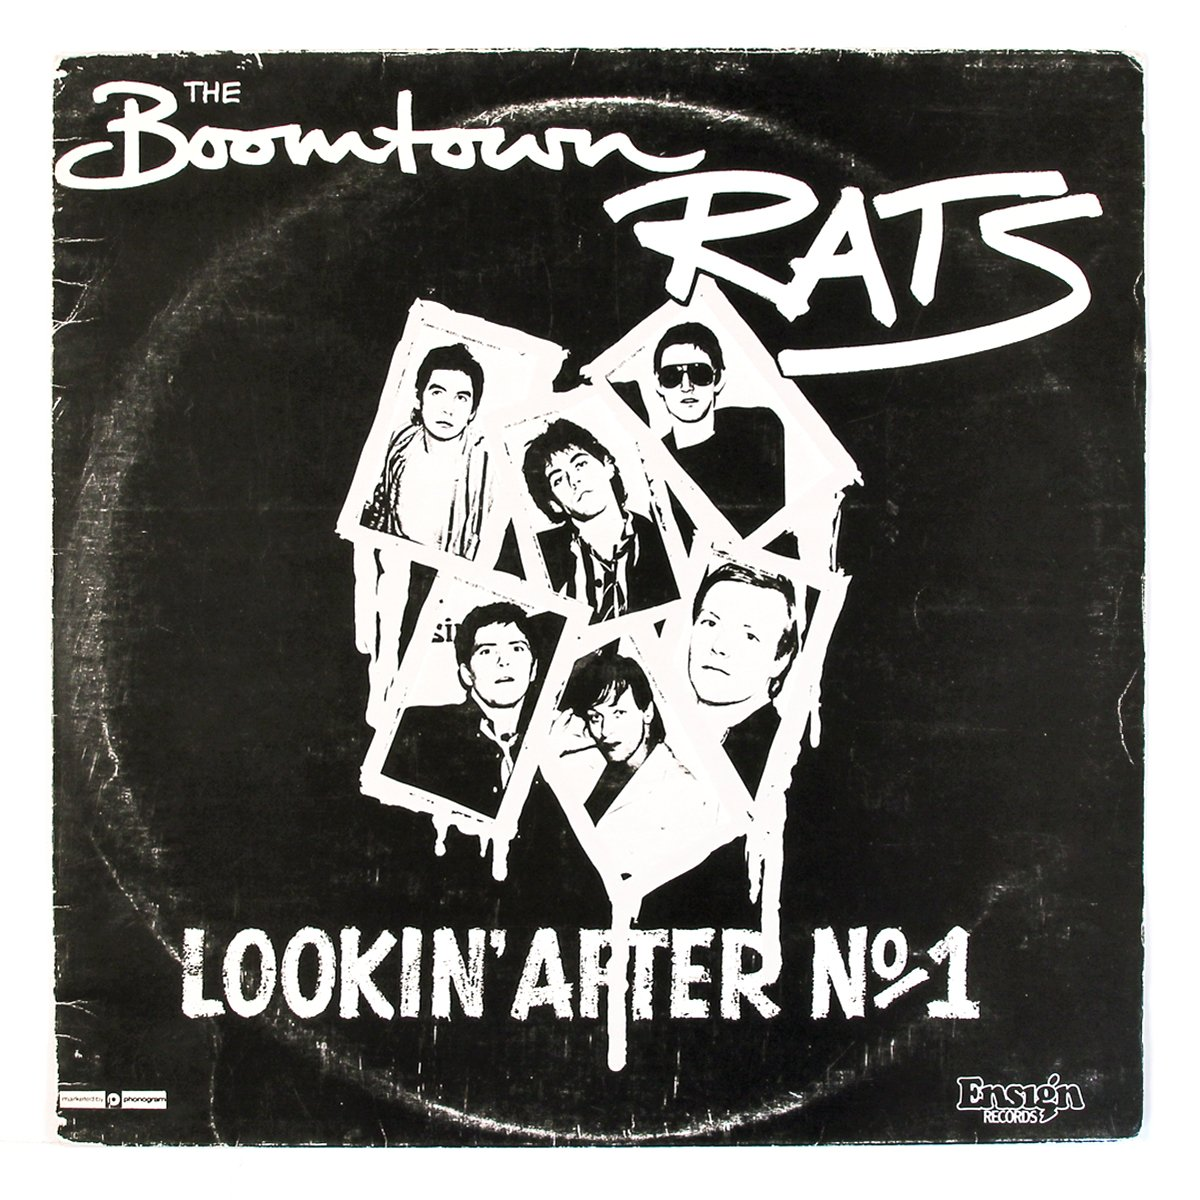 Lookin' After No. 1; The Boomtown Rats; Mercury (1977); design: N/A; Print: N/A